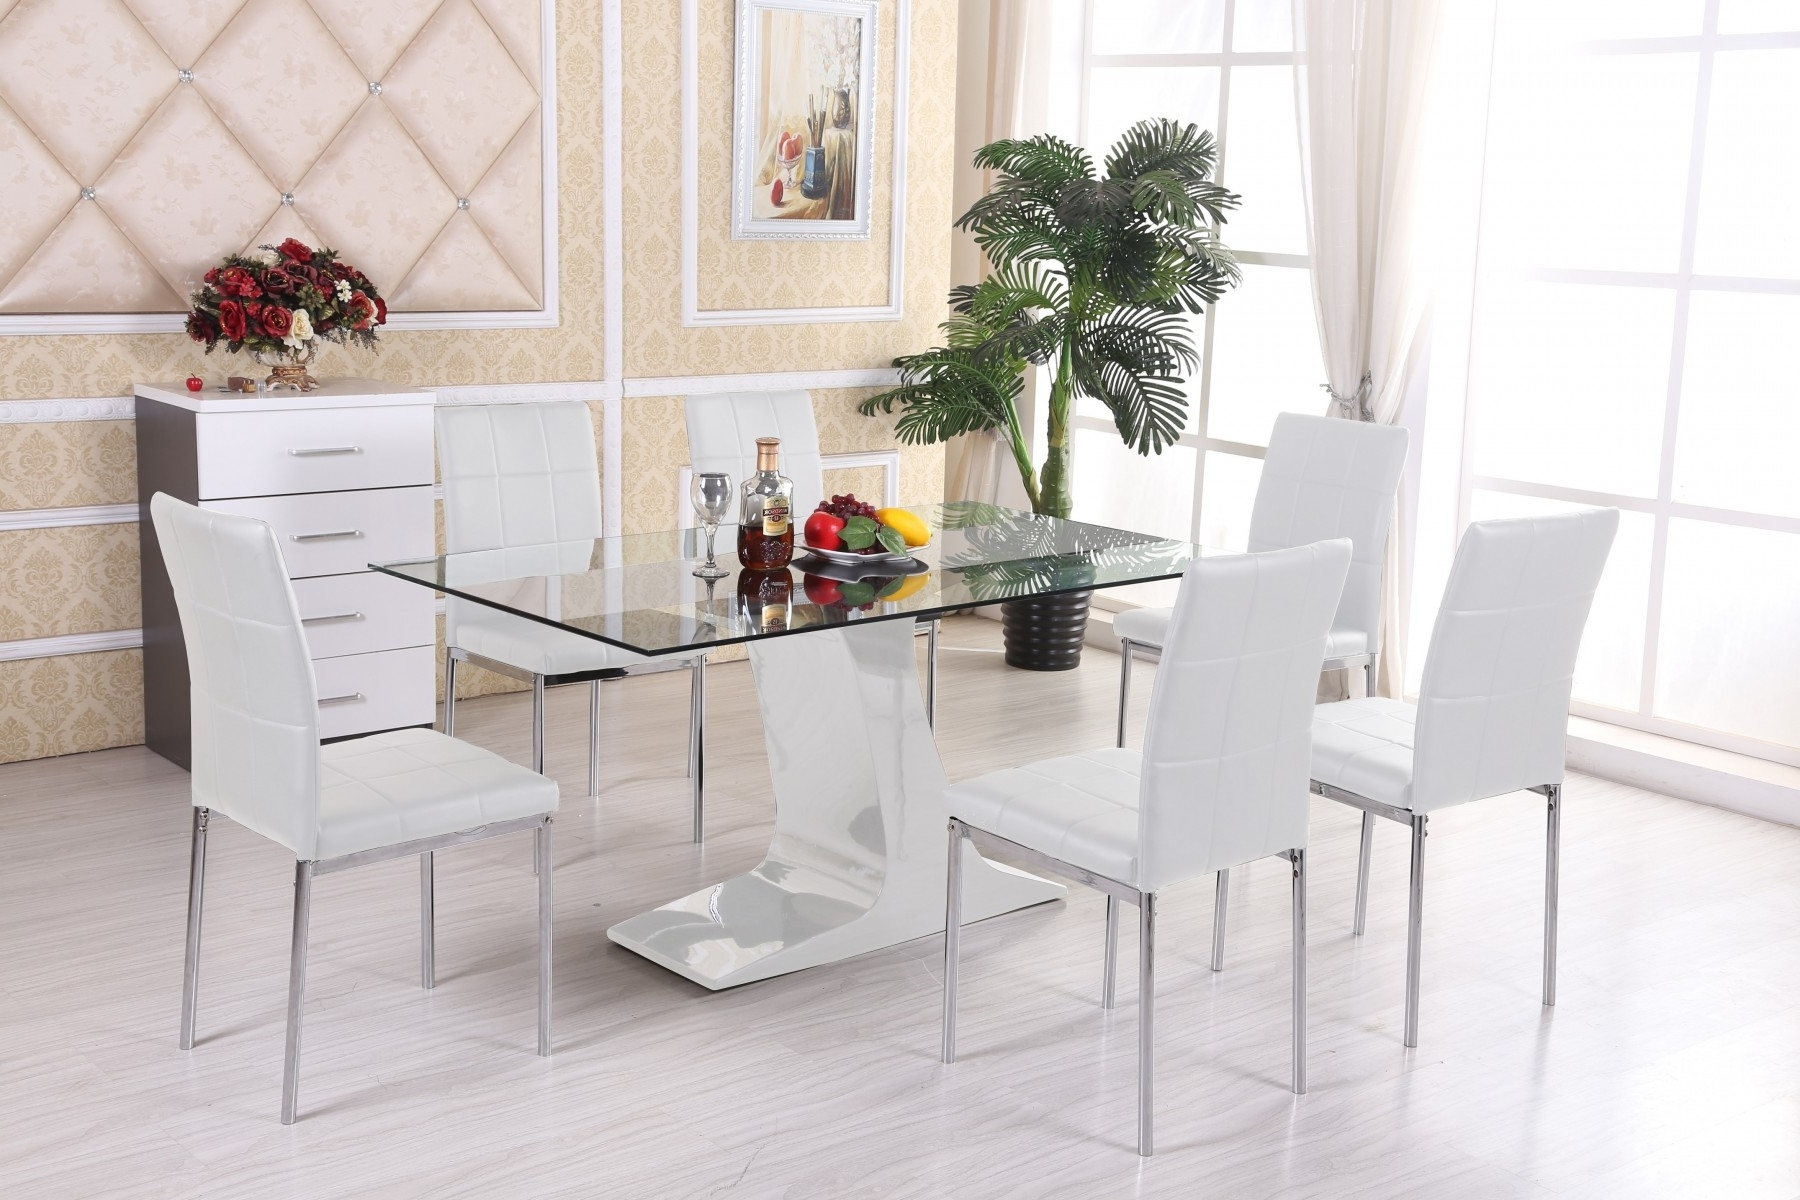 4 Optimal Choices In Glass Dining Table And Chairs – Blogbeen throughout Trendy Glass Dining Tables And 6 Chairs